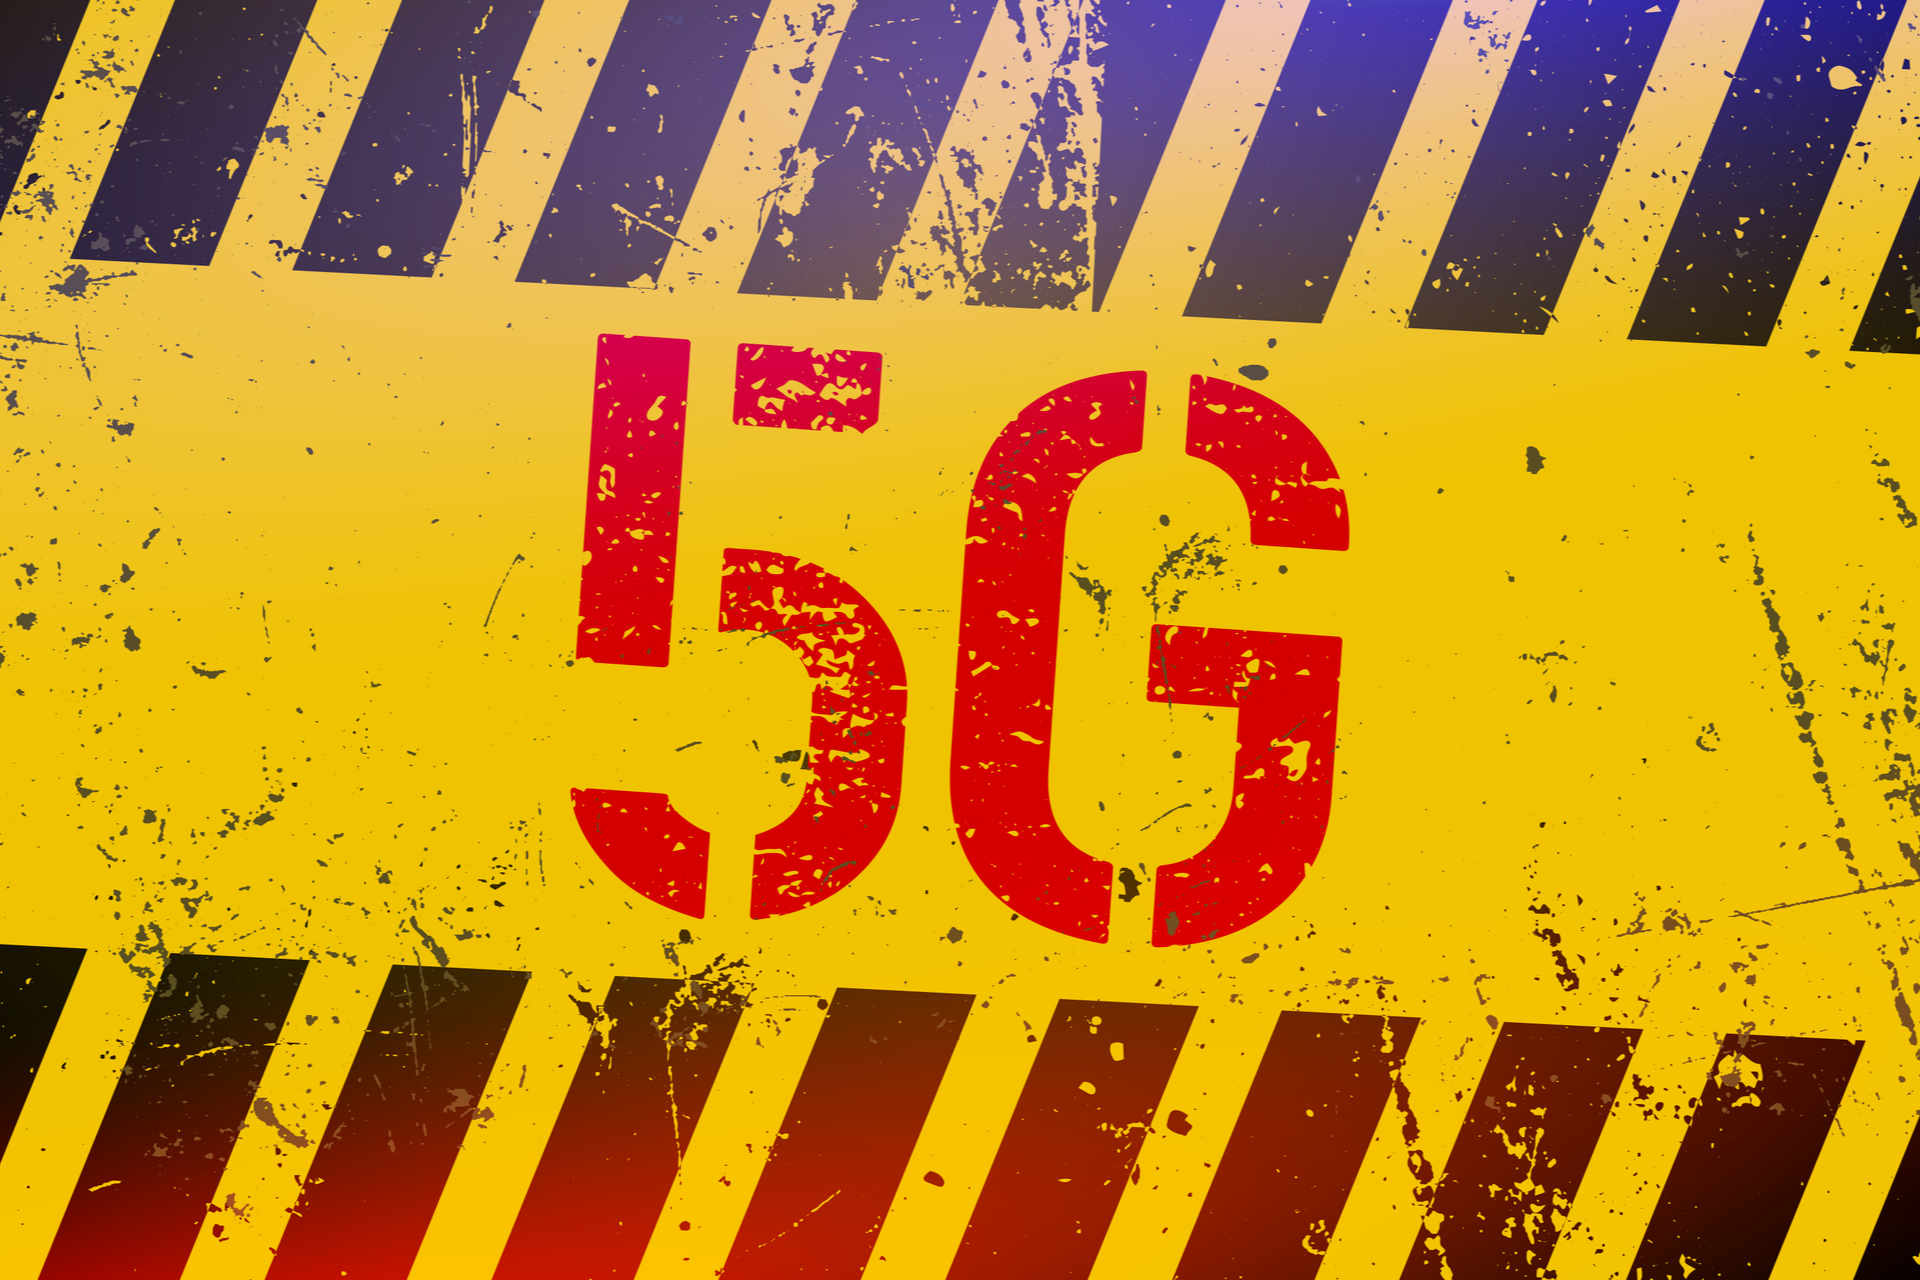 European Commission holds 5G cybersecurity press conference / Cloud Expo Asia gets underway / NASA launches Ionospheric Connection Explorer